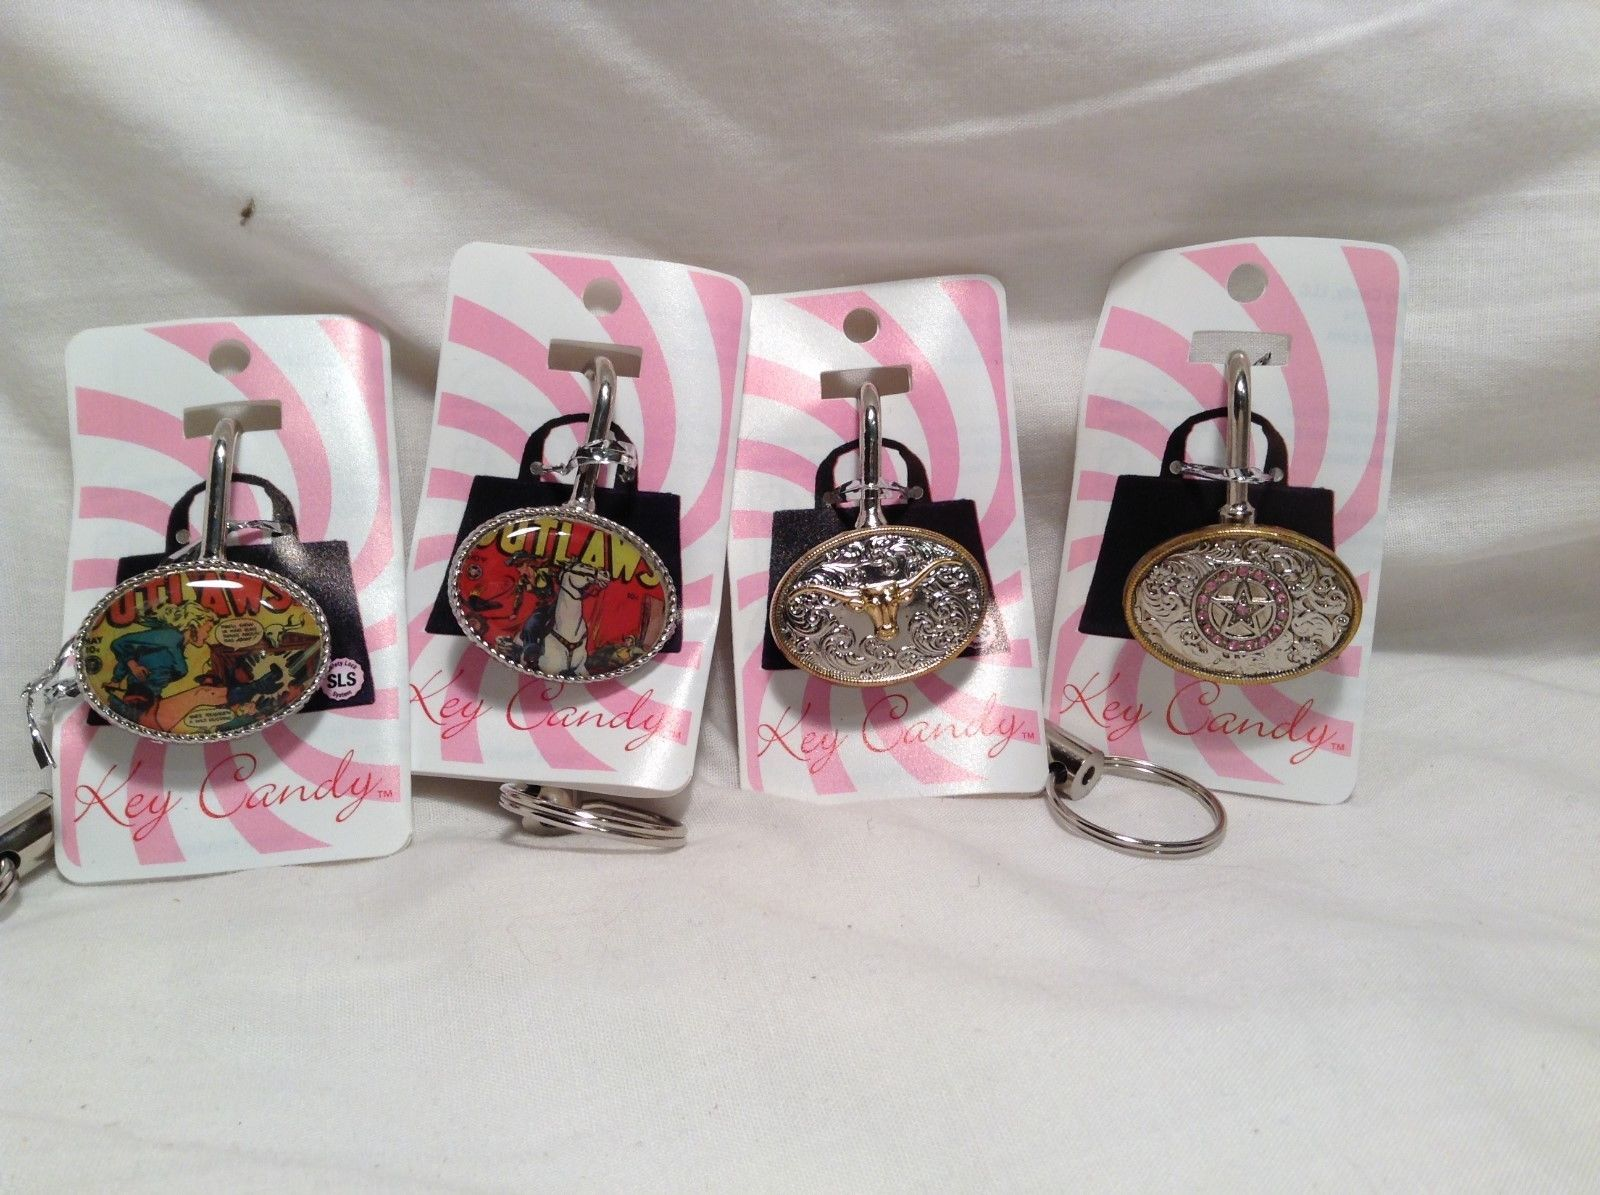 NEW Key Candy Western-themed Set of 4 Key Locks